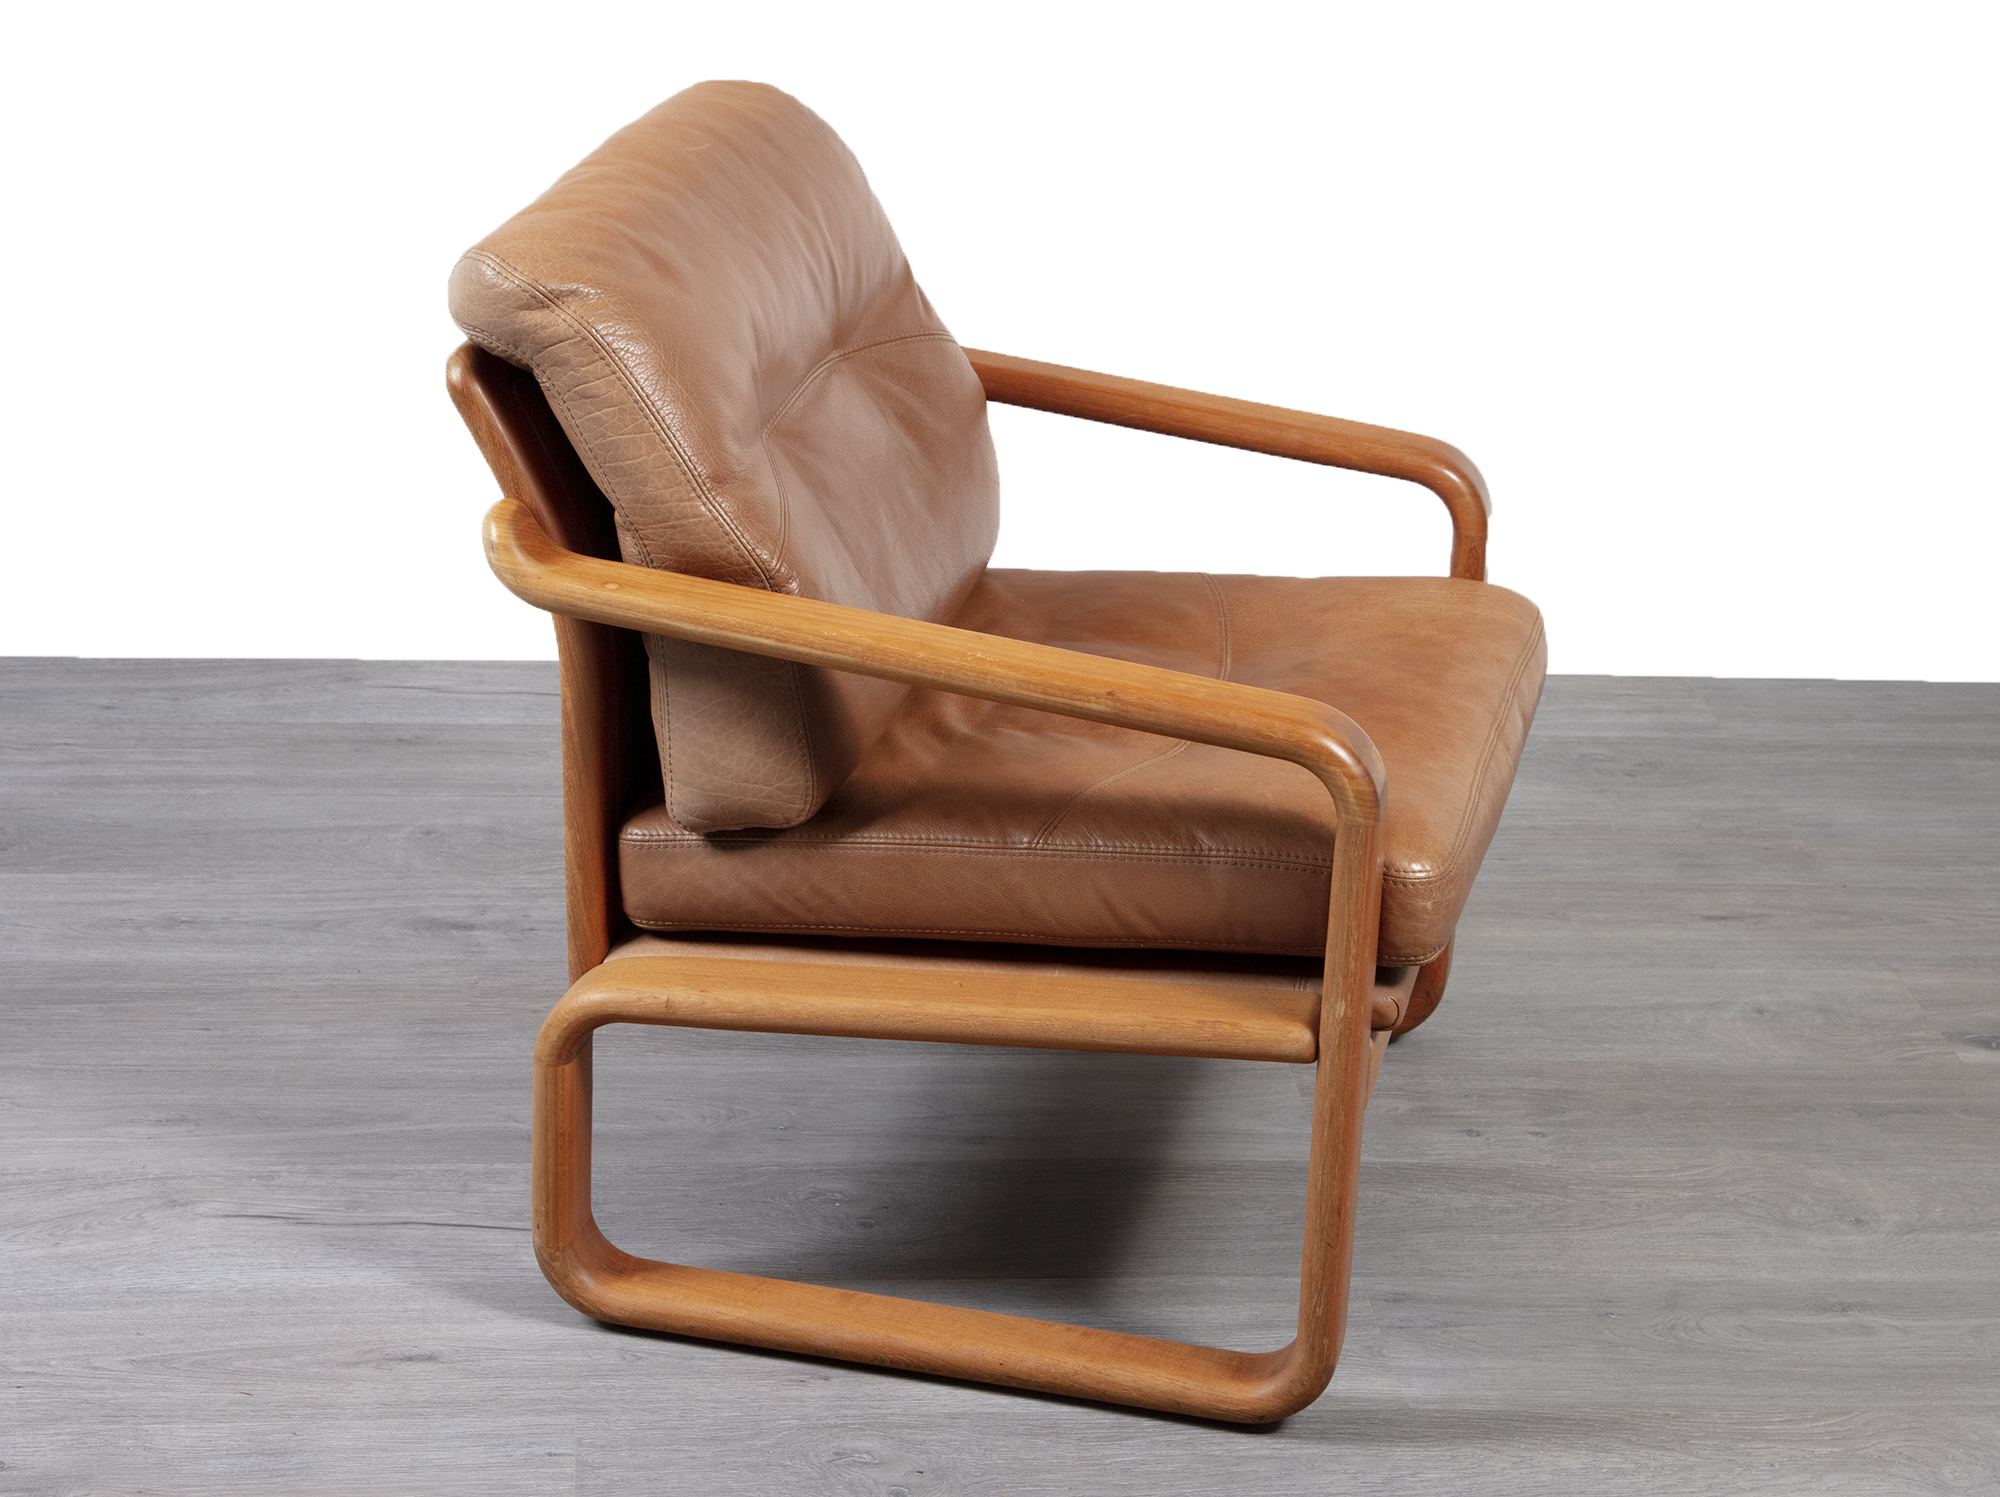 Image of: Danish Leather Armchair 20th Century Scandinavia